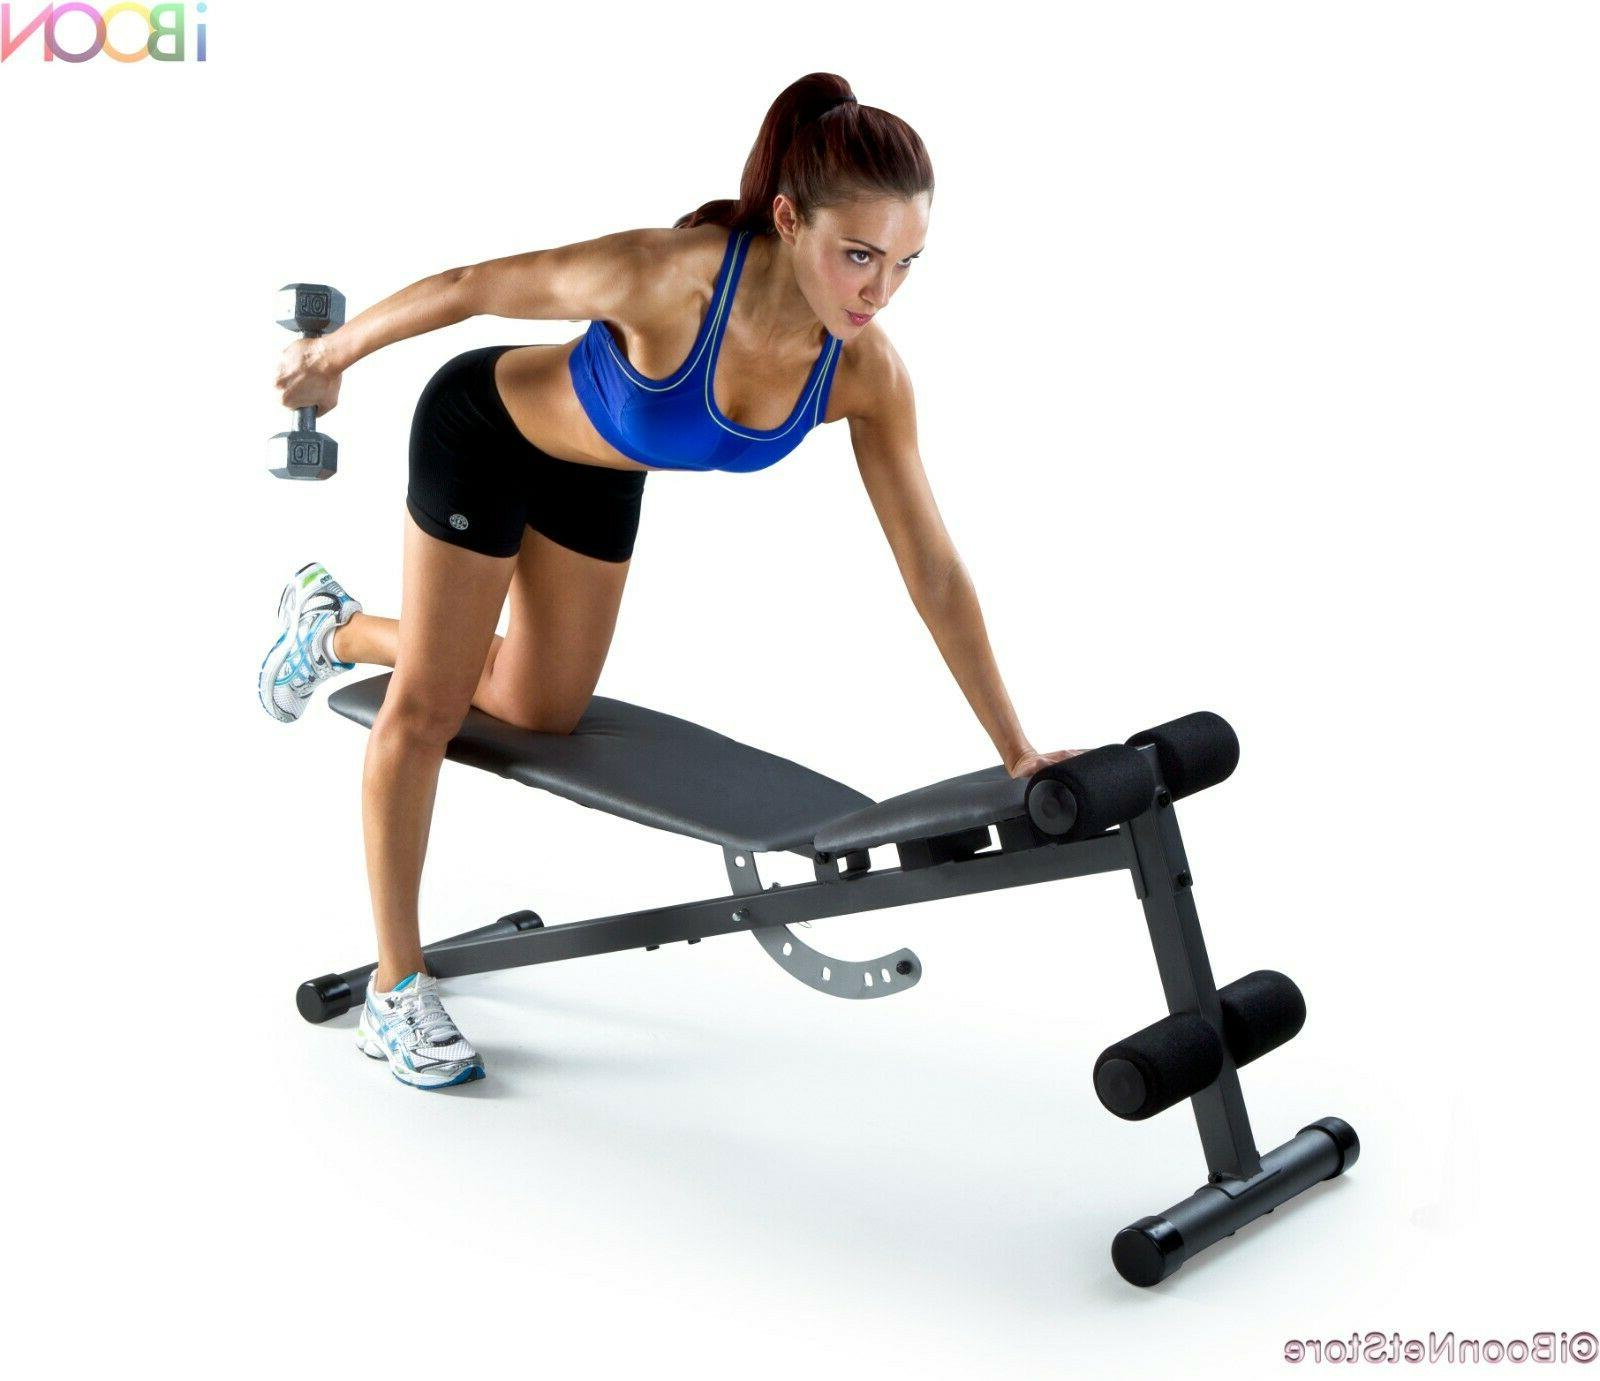 ADJUSTABLE WEIGHT BENCH Incline Strength Workout Training